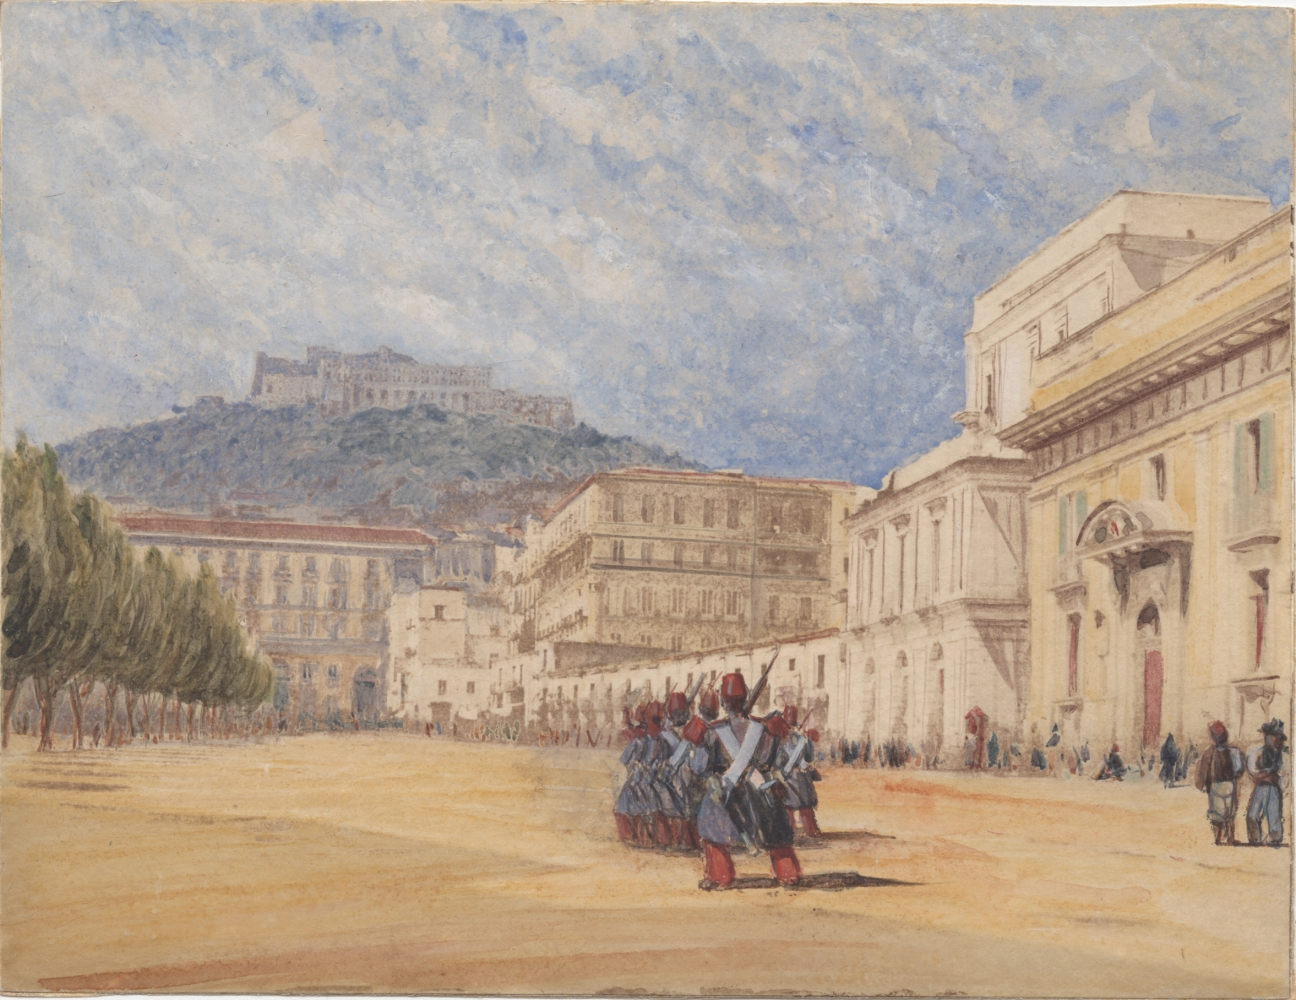 Rev. Calvert Richard JONES (Welsh, 1802-1877) Soldiers in formation, Naples, 1847 Hand-colored salt print from a calotype negative, spring 1846 15.3 x 19.9 cm, mounted flush on card